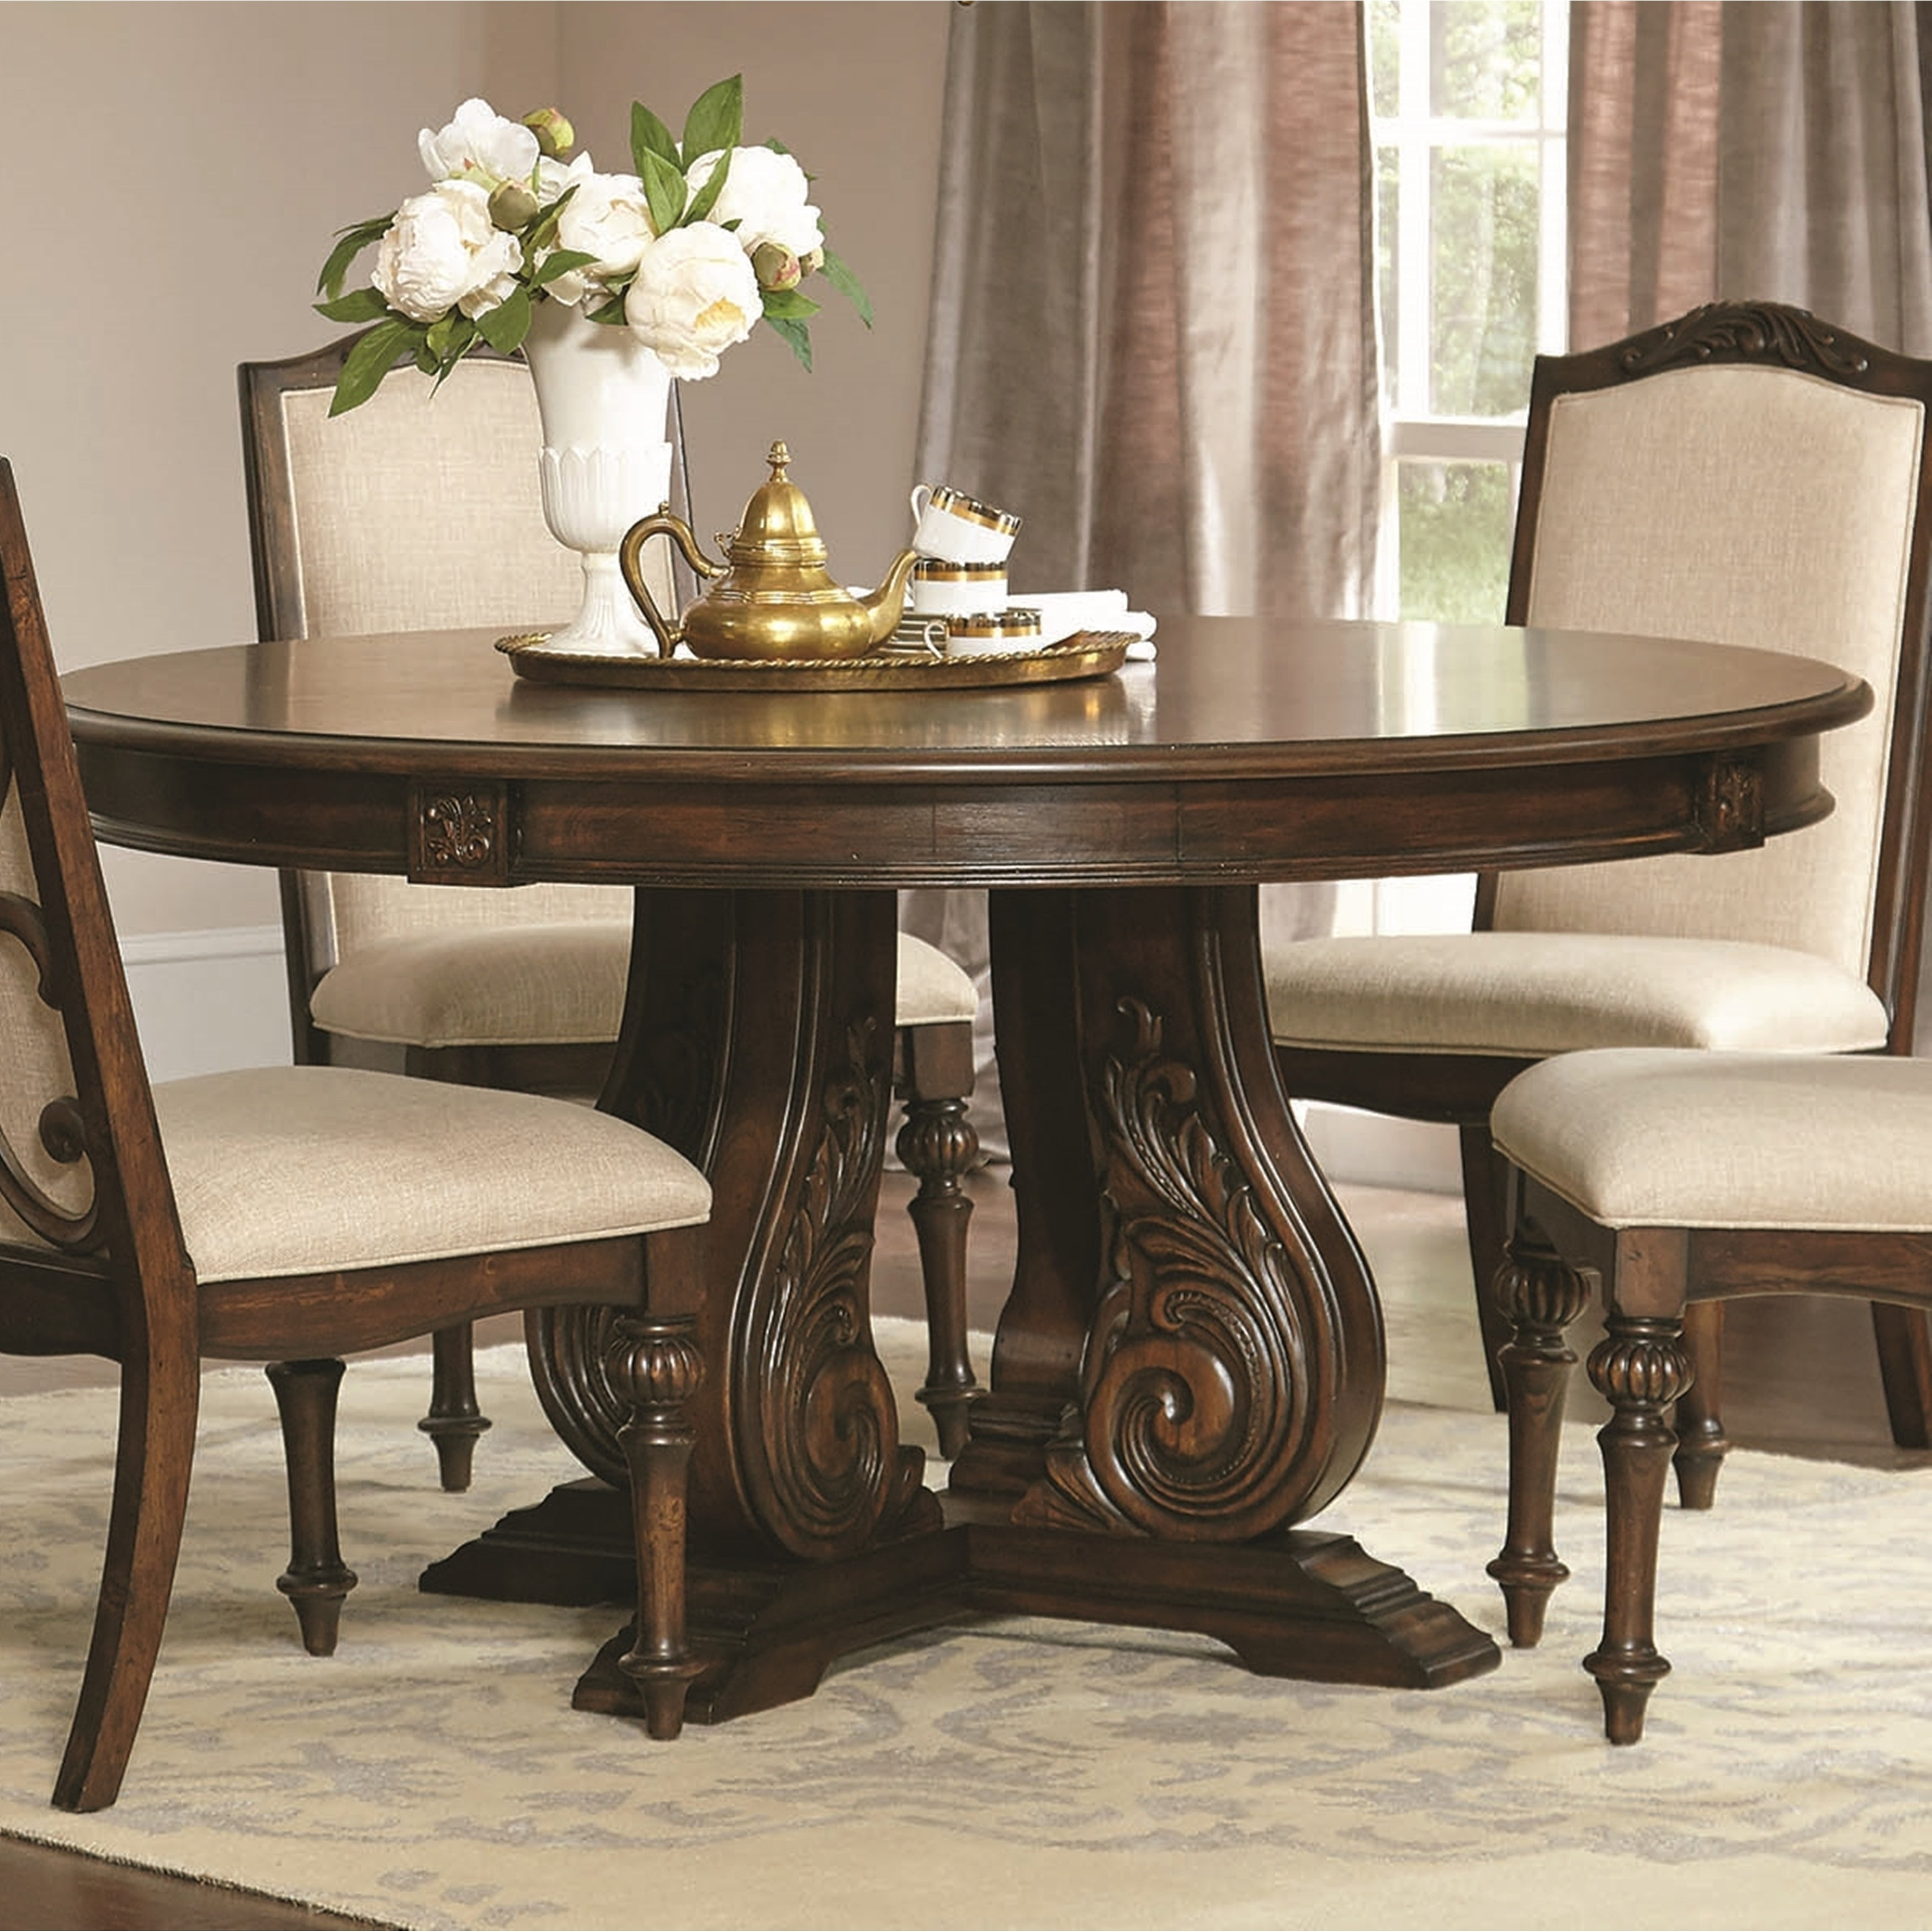 La Bauhinia French Antique Carved Wood Design Round Dining Table